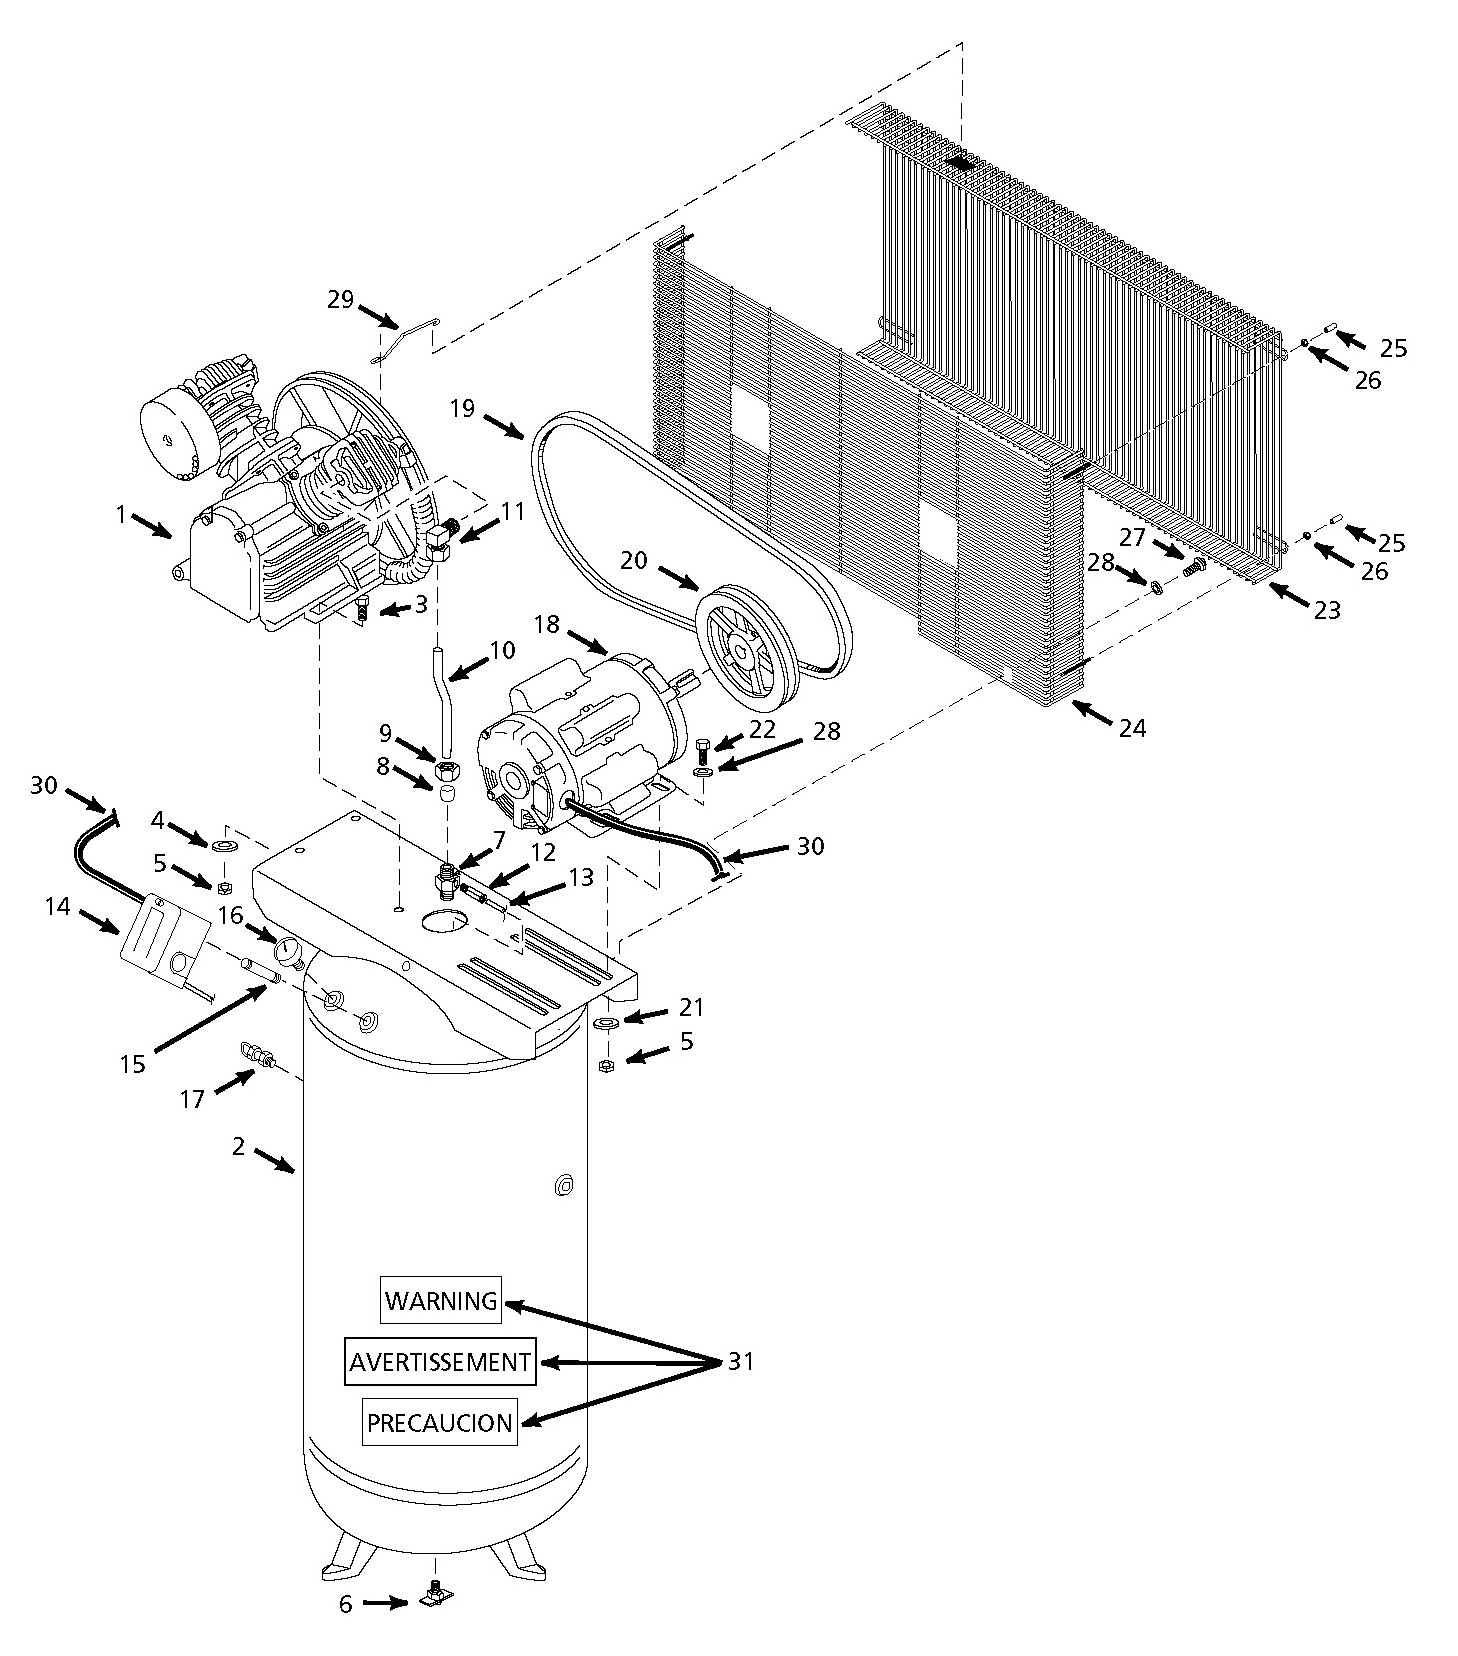 Campbell Hausfeld Air Compressor Parts Diagram Campbell Hausfeld Hs5610 Hs5810 Hs7815 Air Pressor Parts Of Campbell Hausfeld Air Compressor Parts Diagram